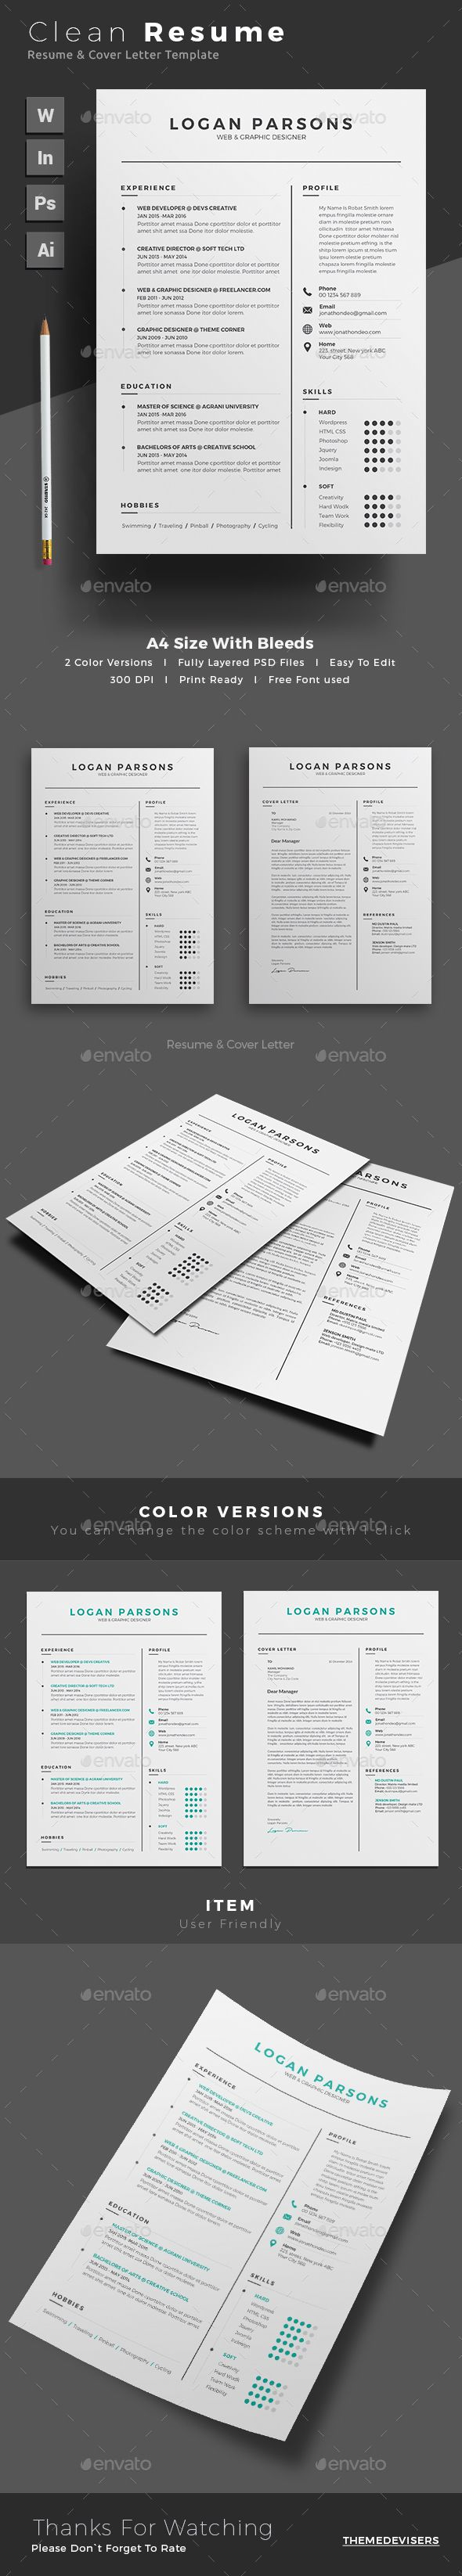 Resume by themedevisers Professional Resume Word Template. Elegant ...